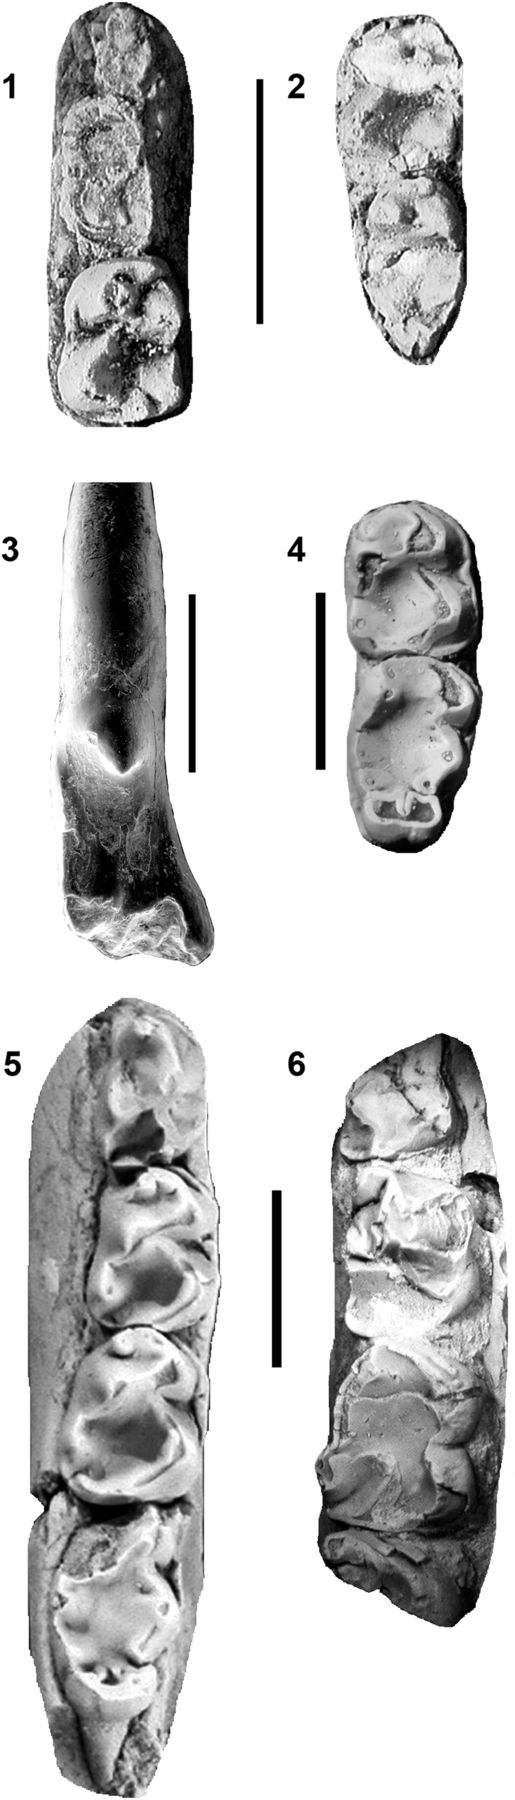 (1) FOBU 6366, Microsyops latidens, left dentary m1 in